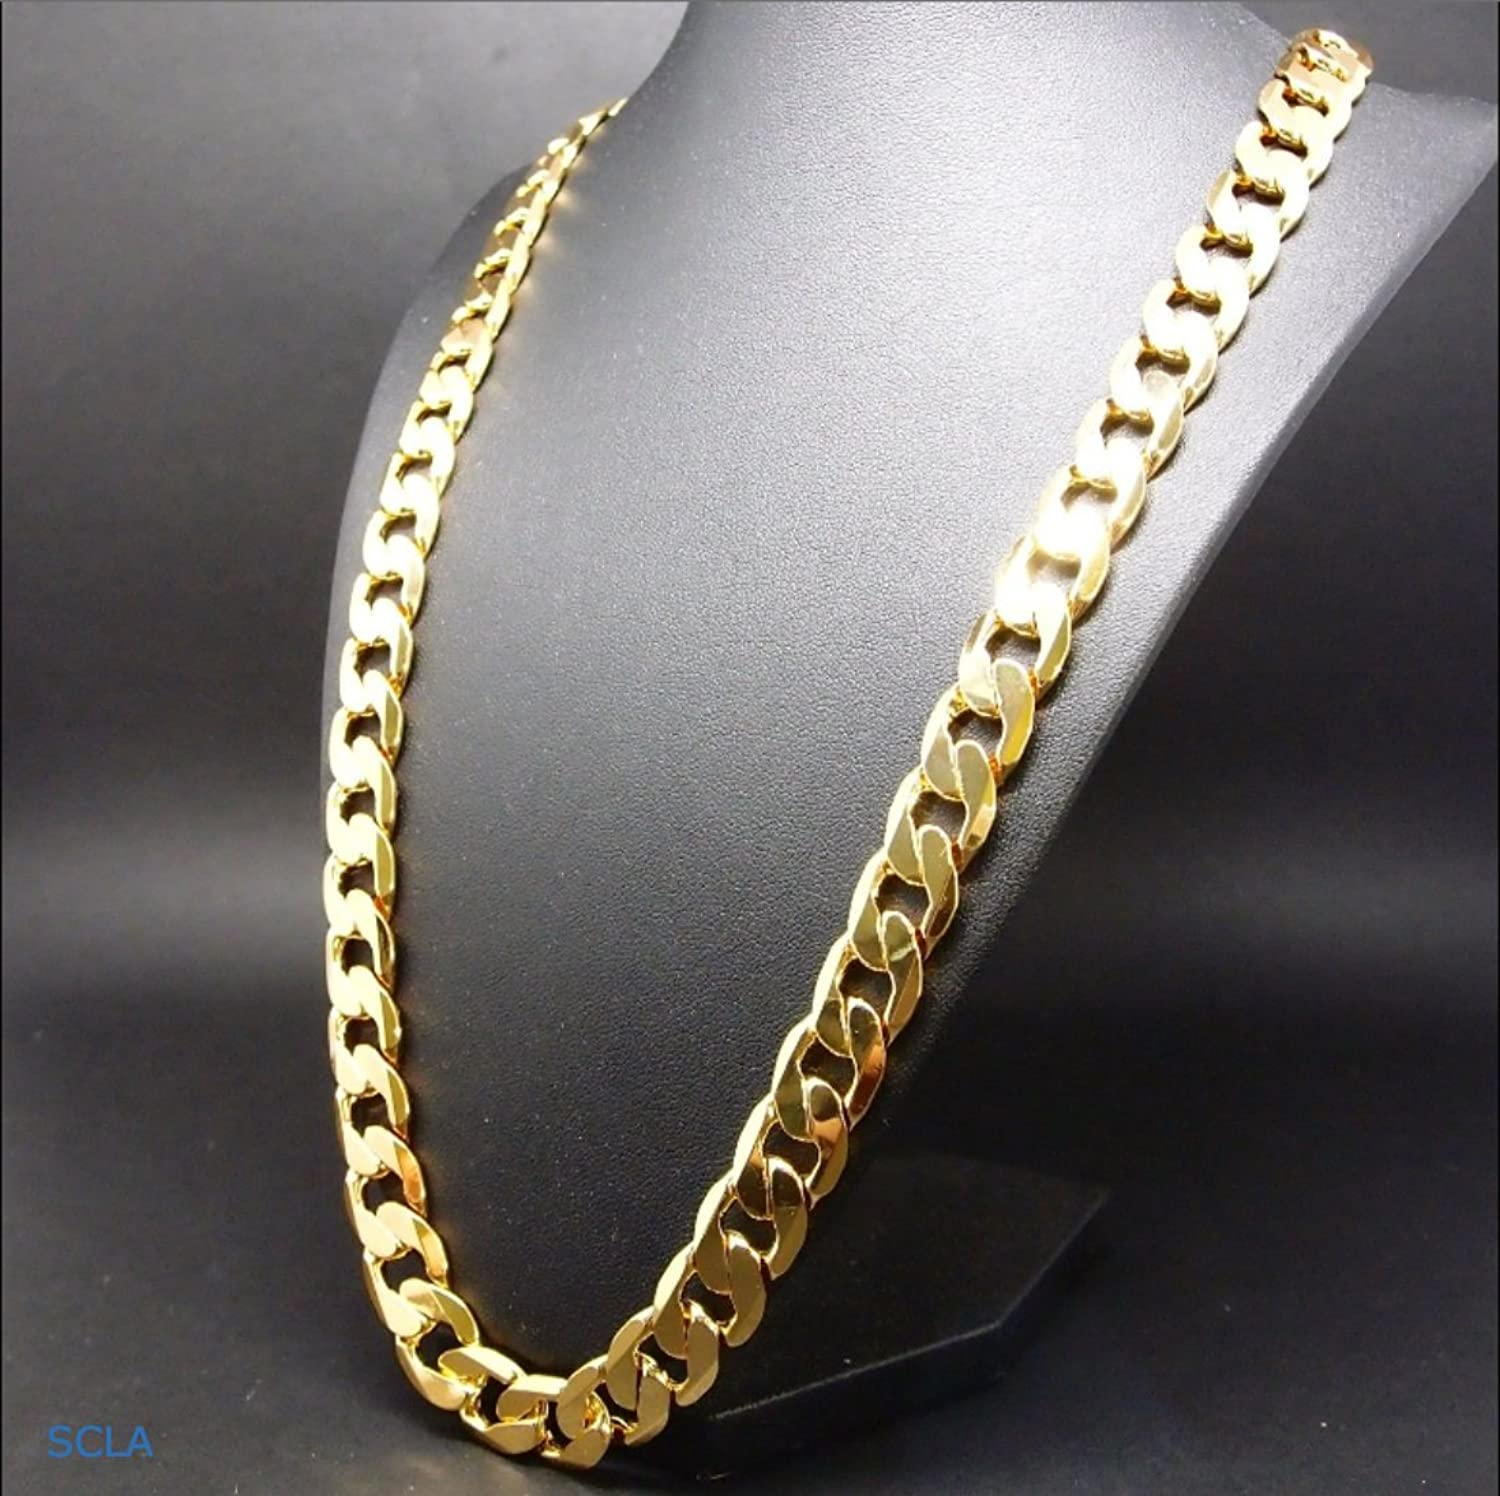 Gold chain necklace 9MM 24K Diamond cut Smooth Cuban Link with a